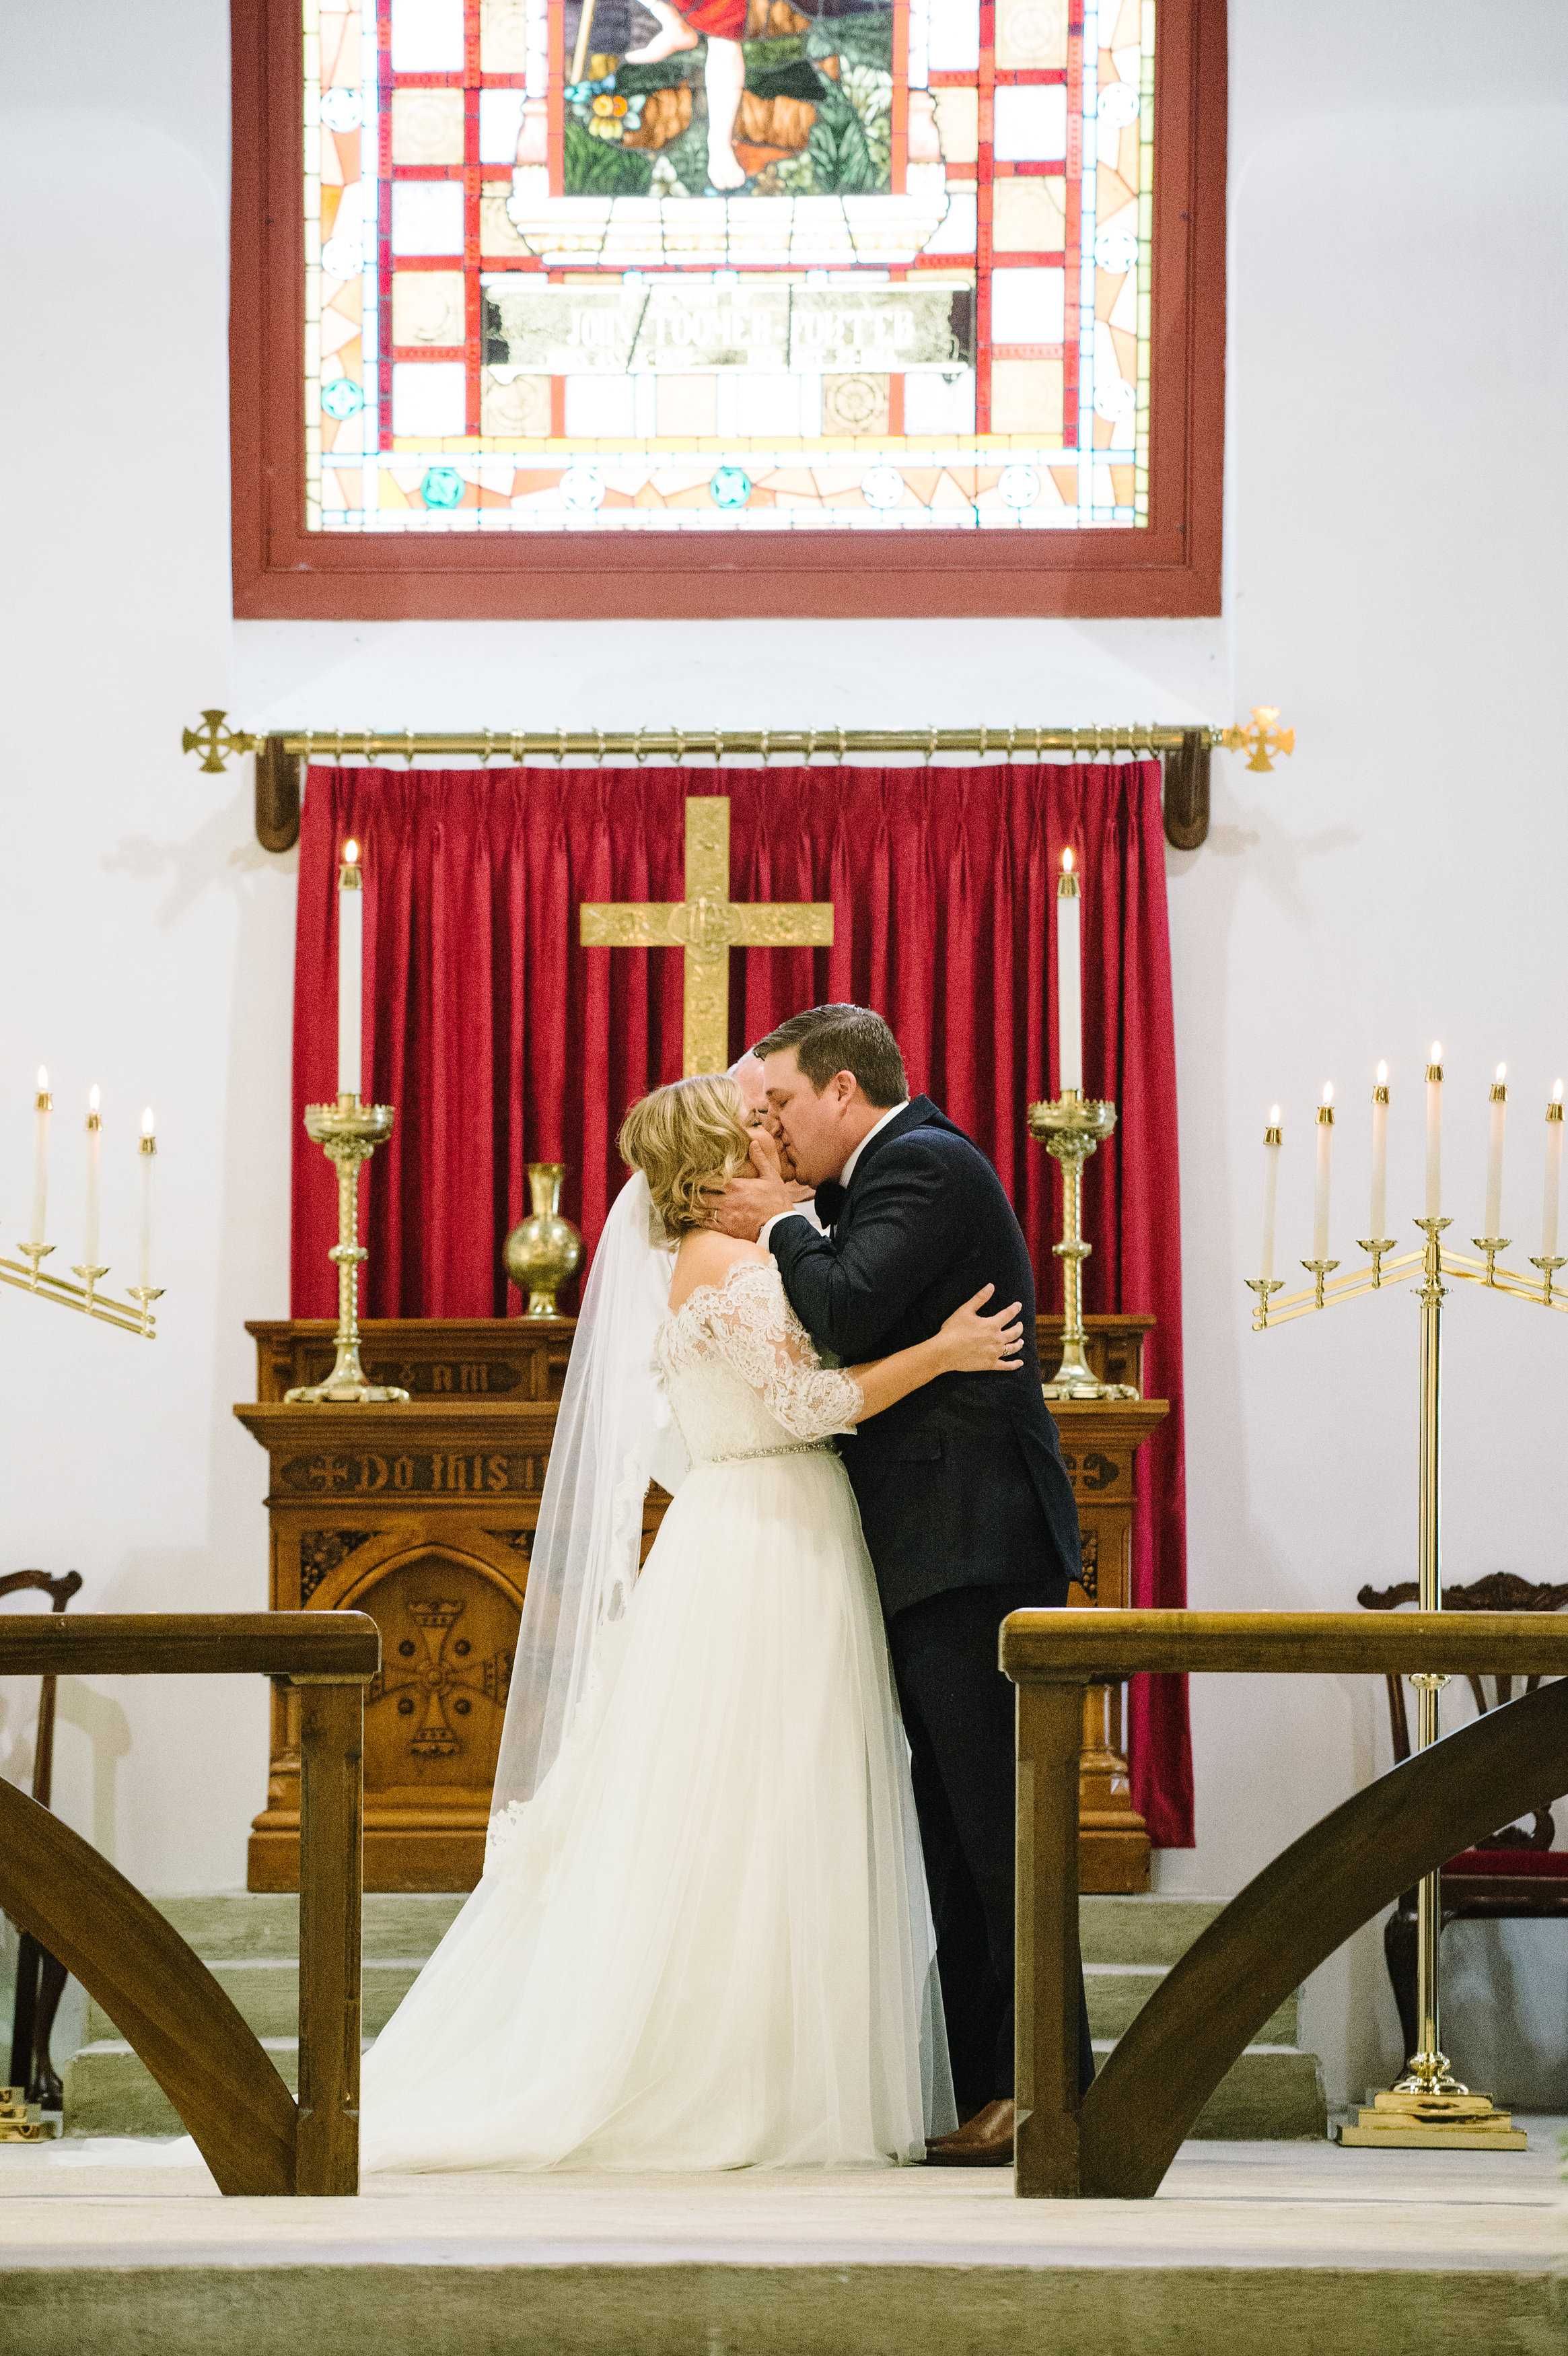 Stephanie+Chad-LowndesGroveWeddingbyAaronandJillianPhotography-275.jpg